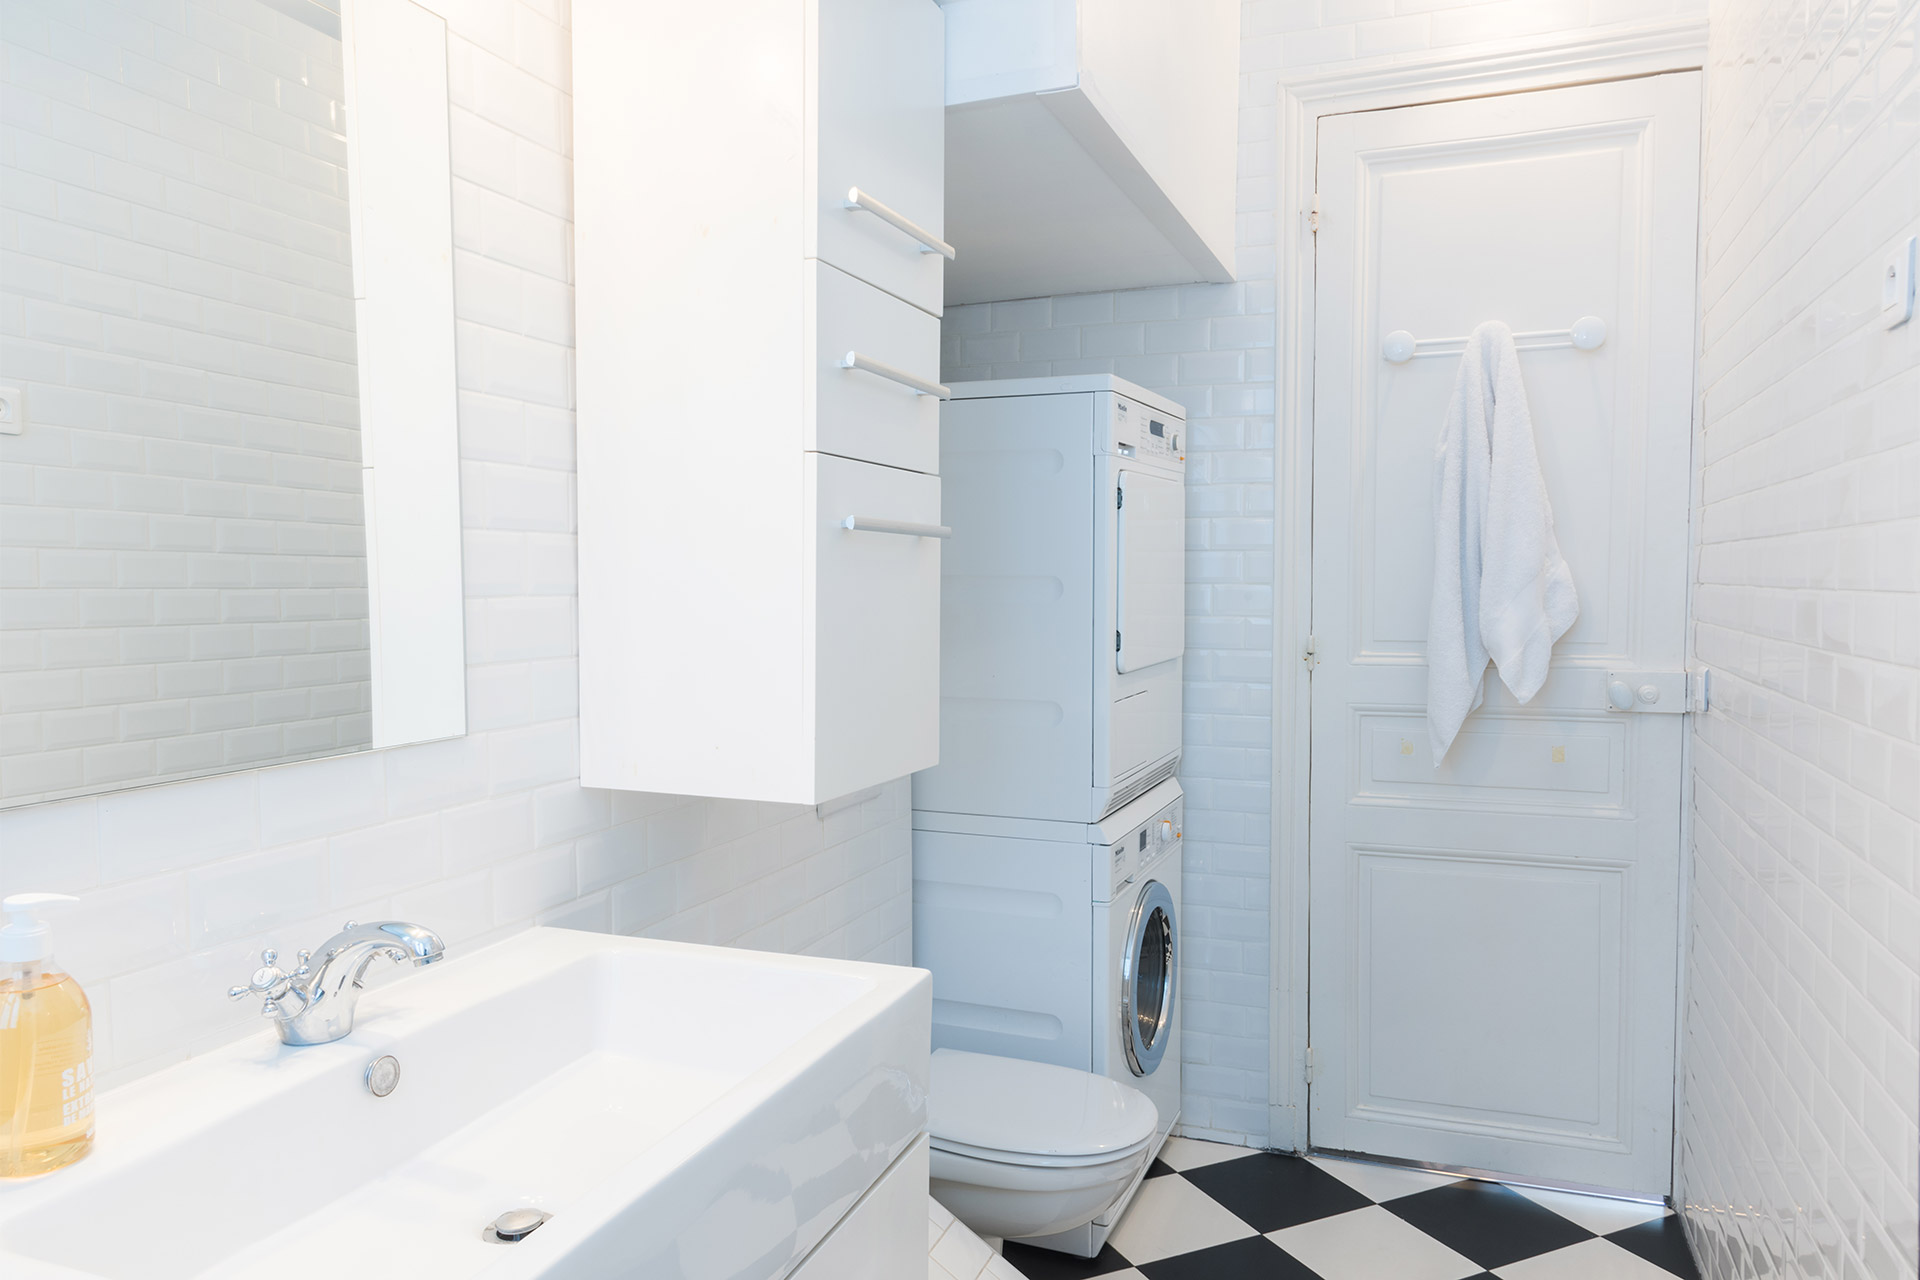 Separate washing machine and dryer in the Maubert vacation rental offered by Paris Perfect